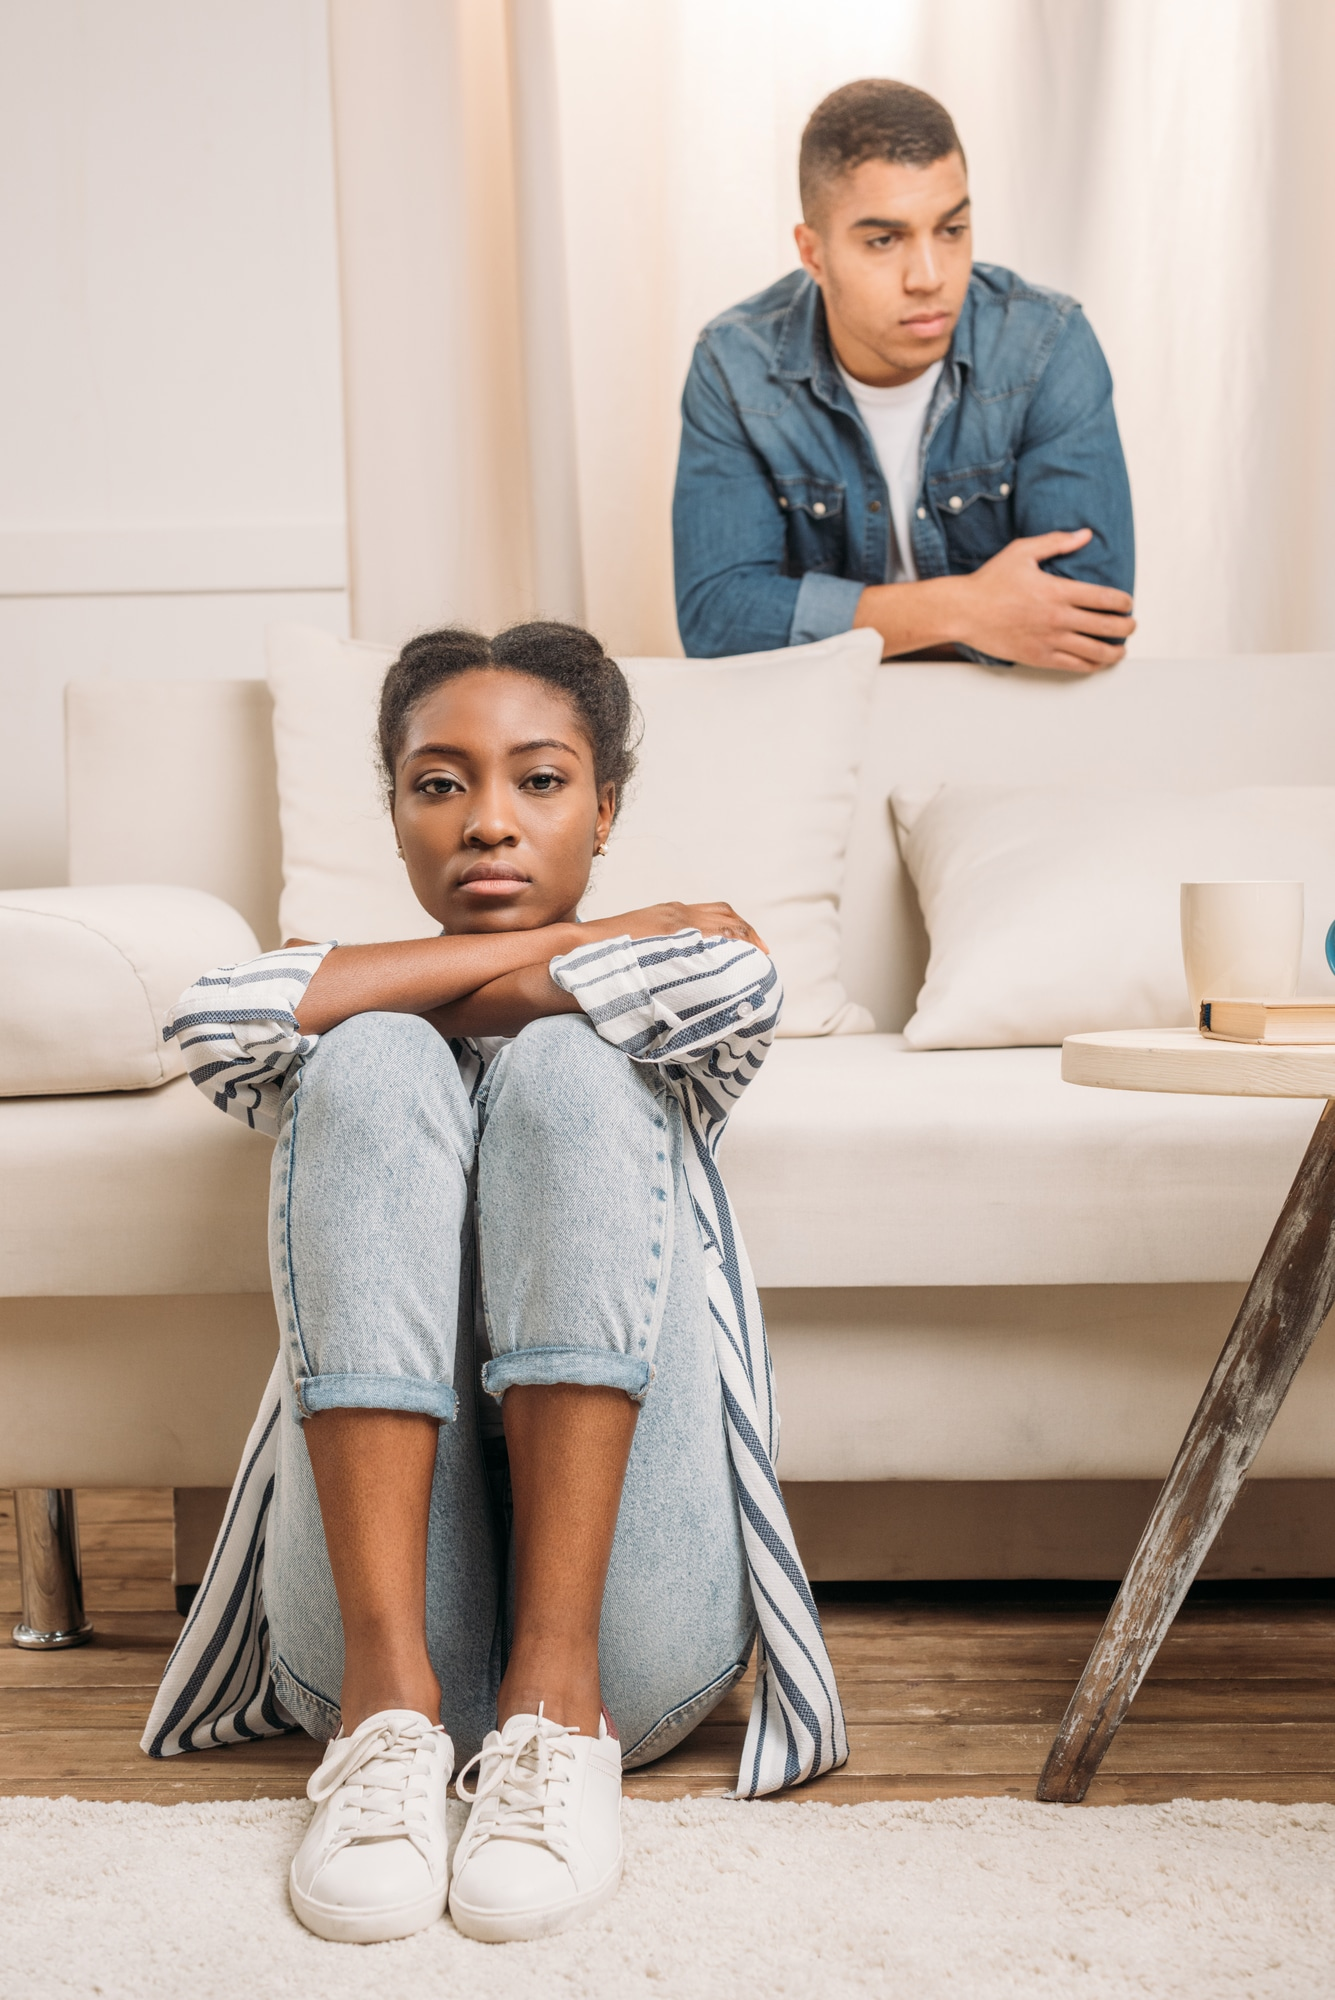 How to Deal with Grief From a Broken Marriage